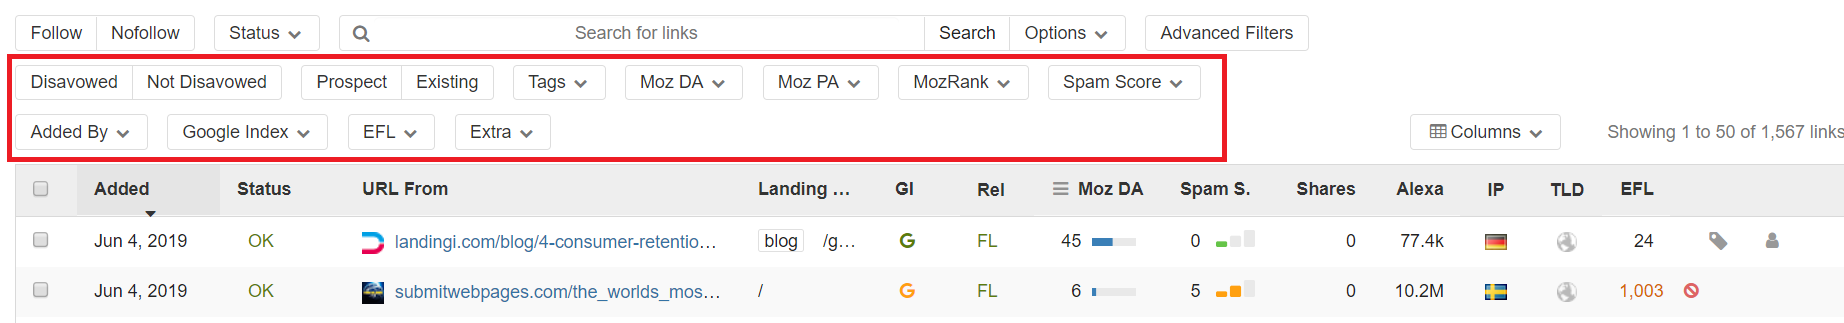 different filtering options for SEO backlinks